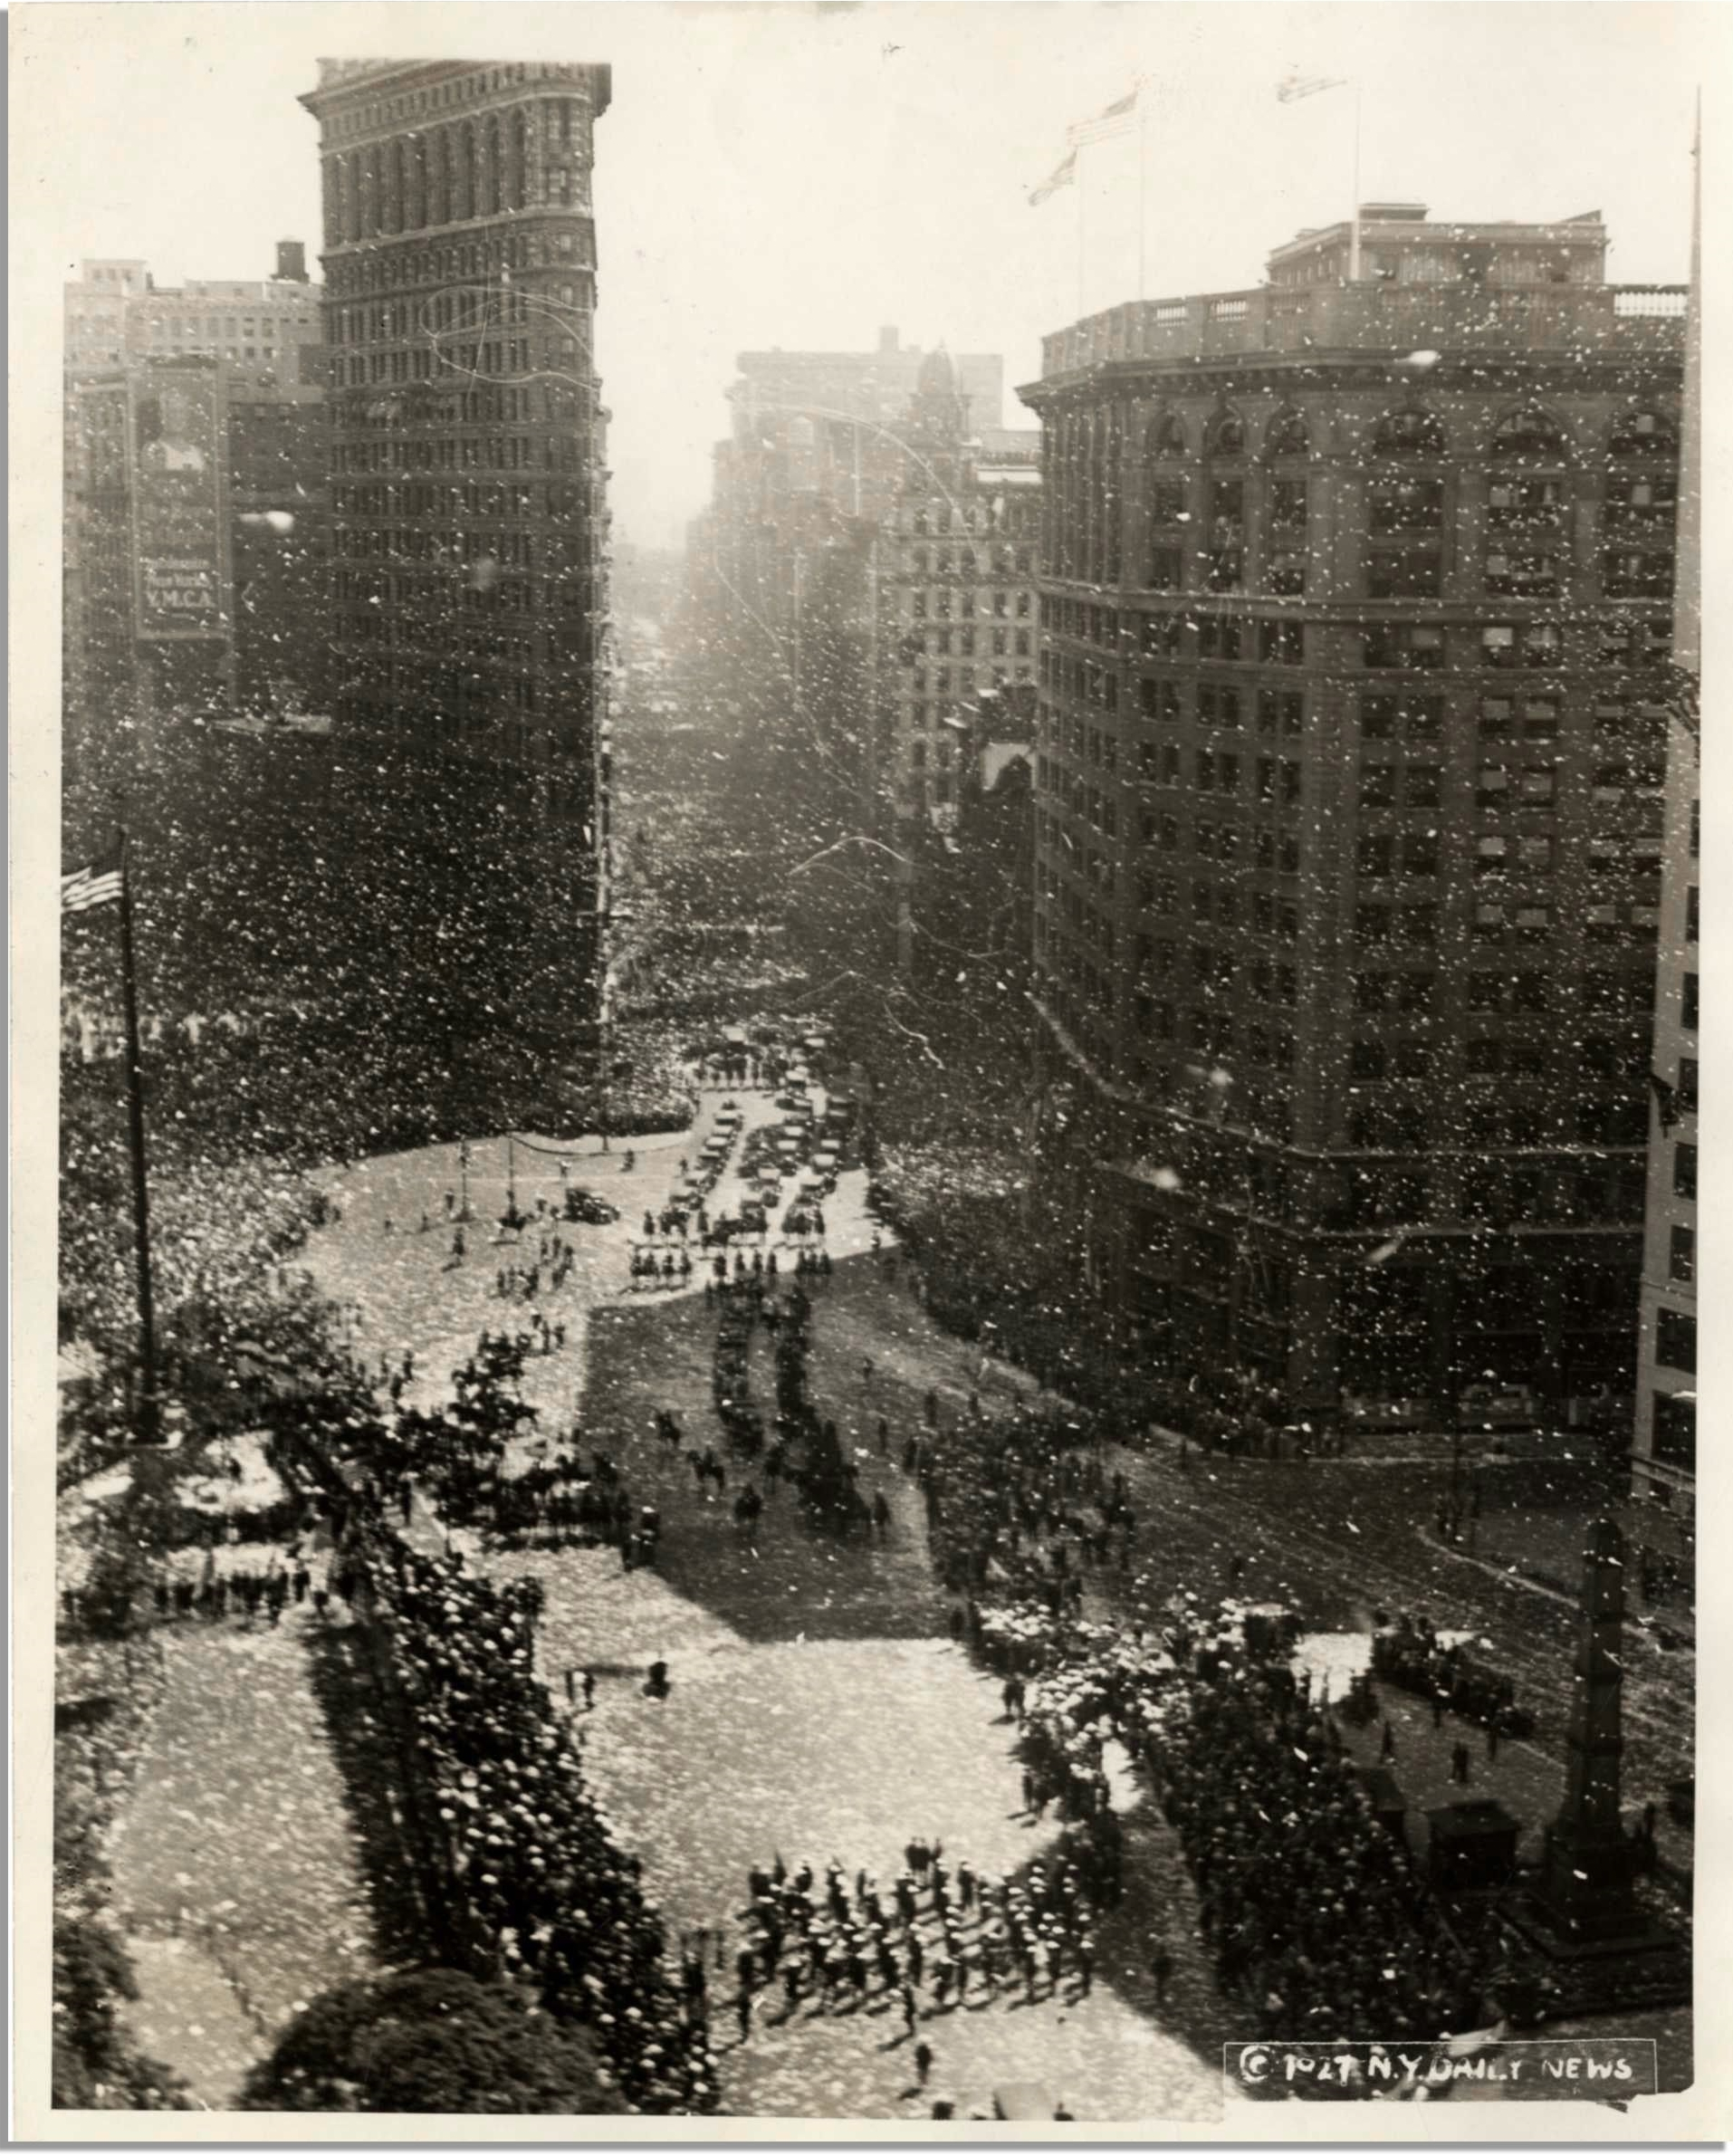 The Welcome Parade for Charles Lindbergh in New York City, June 13, 1927.